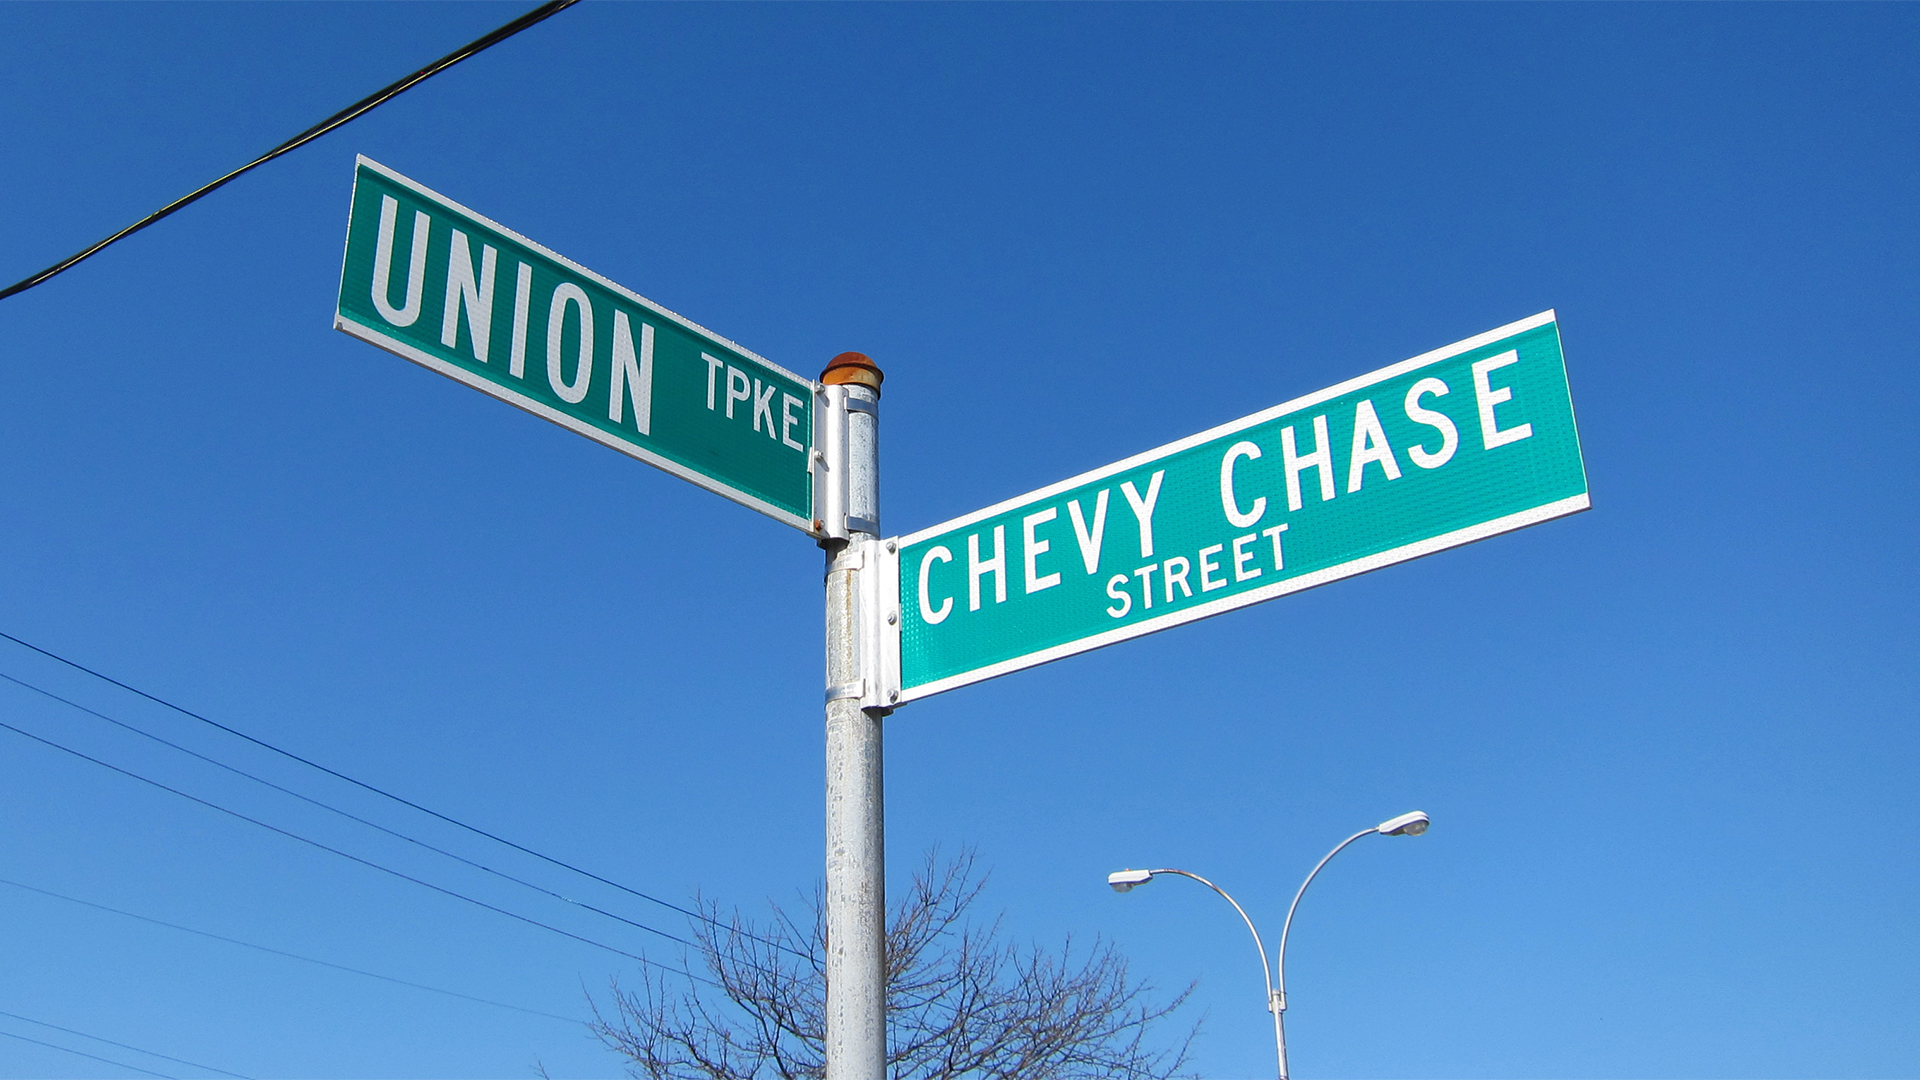 Chevy Chase Street